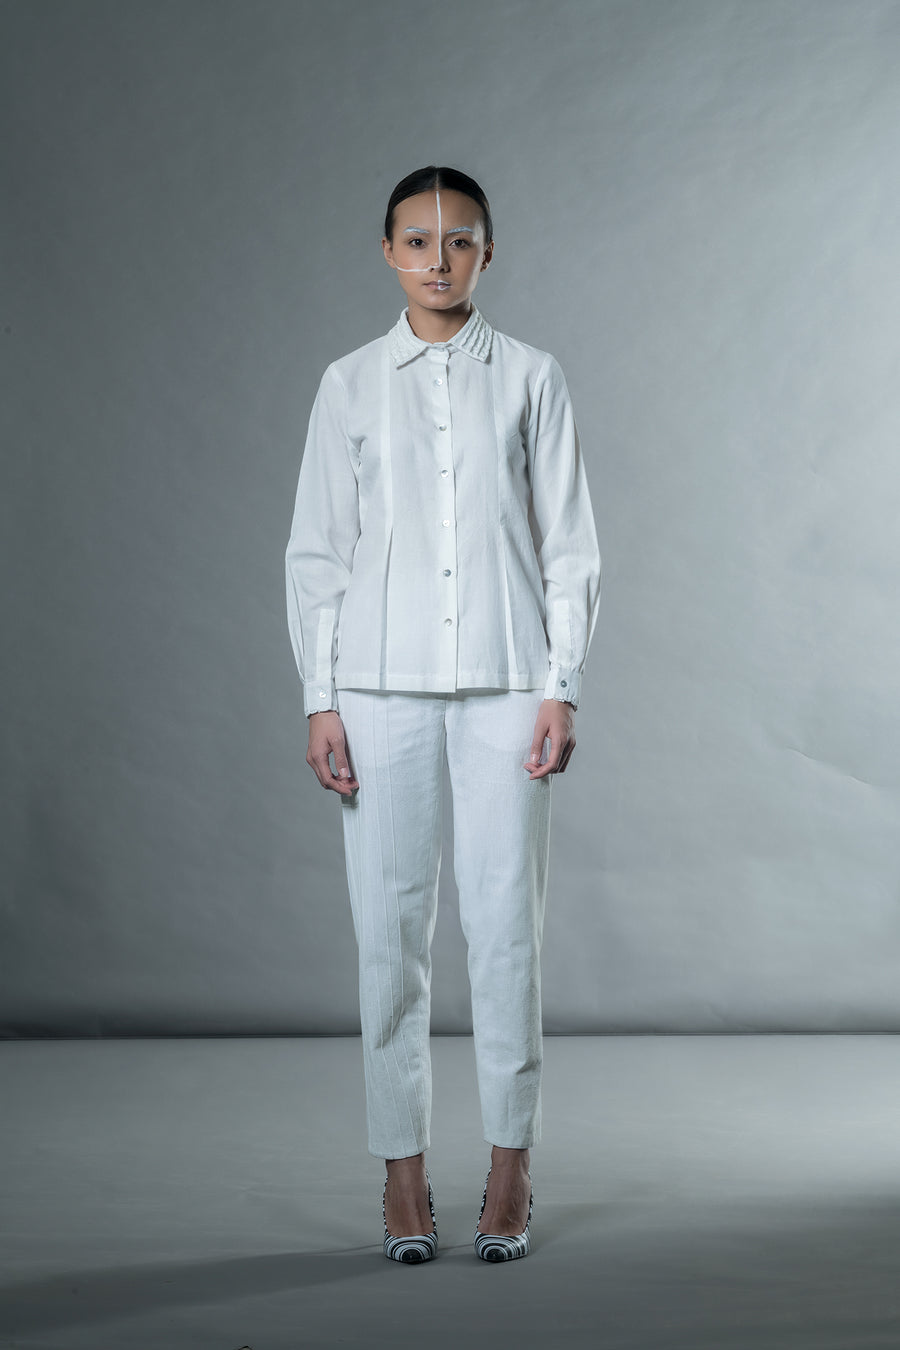 White Shirt with Shell Tucks Collar - Ethical made fashion - onlyethikal